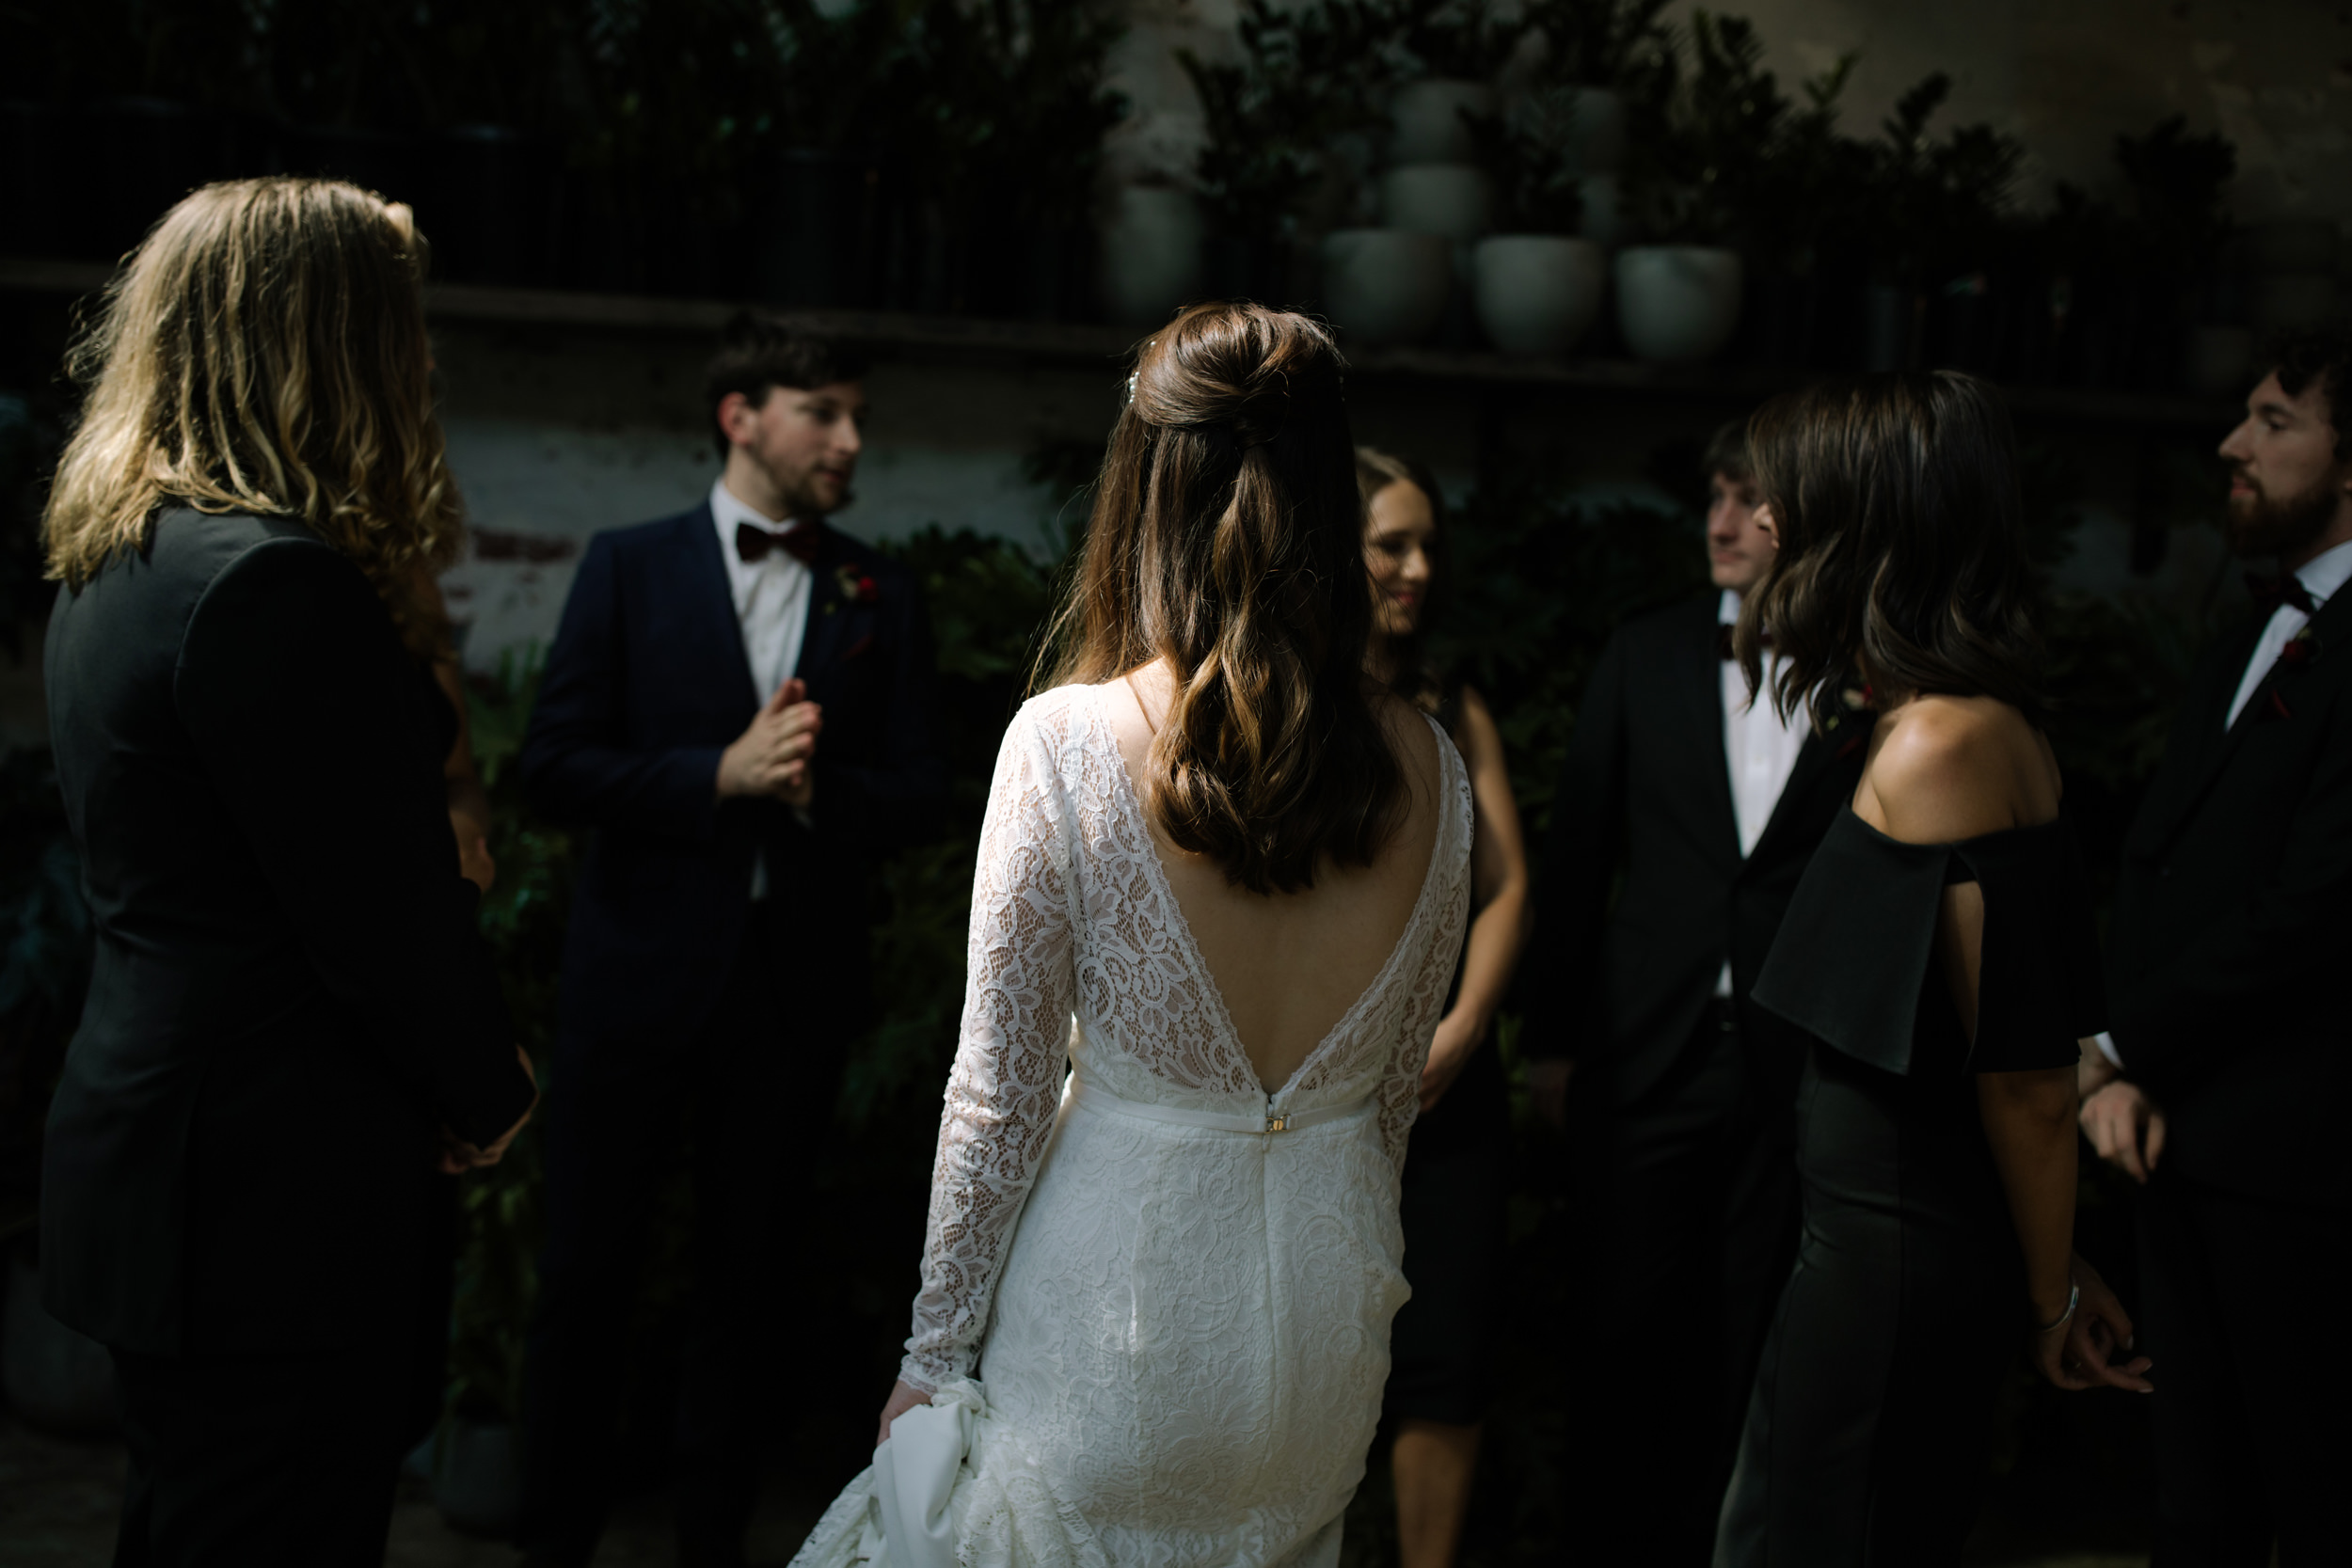 I_Got_You_Babe_Weddings_Emily_Matt_Rupert_Glasshaus_Melbourne0049.JPG